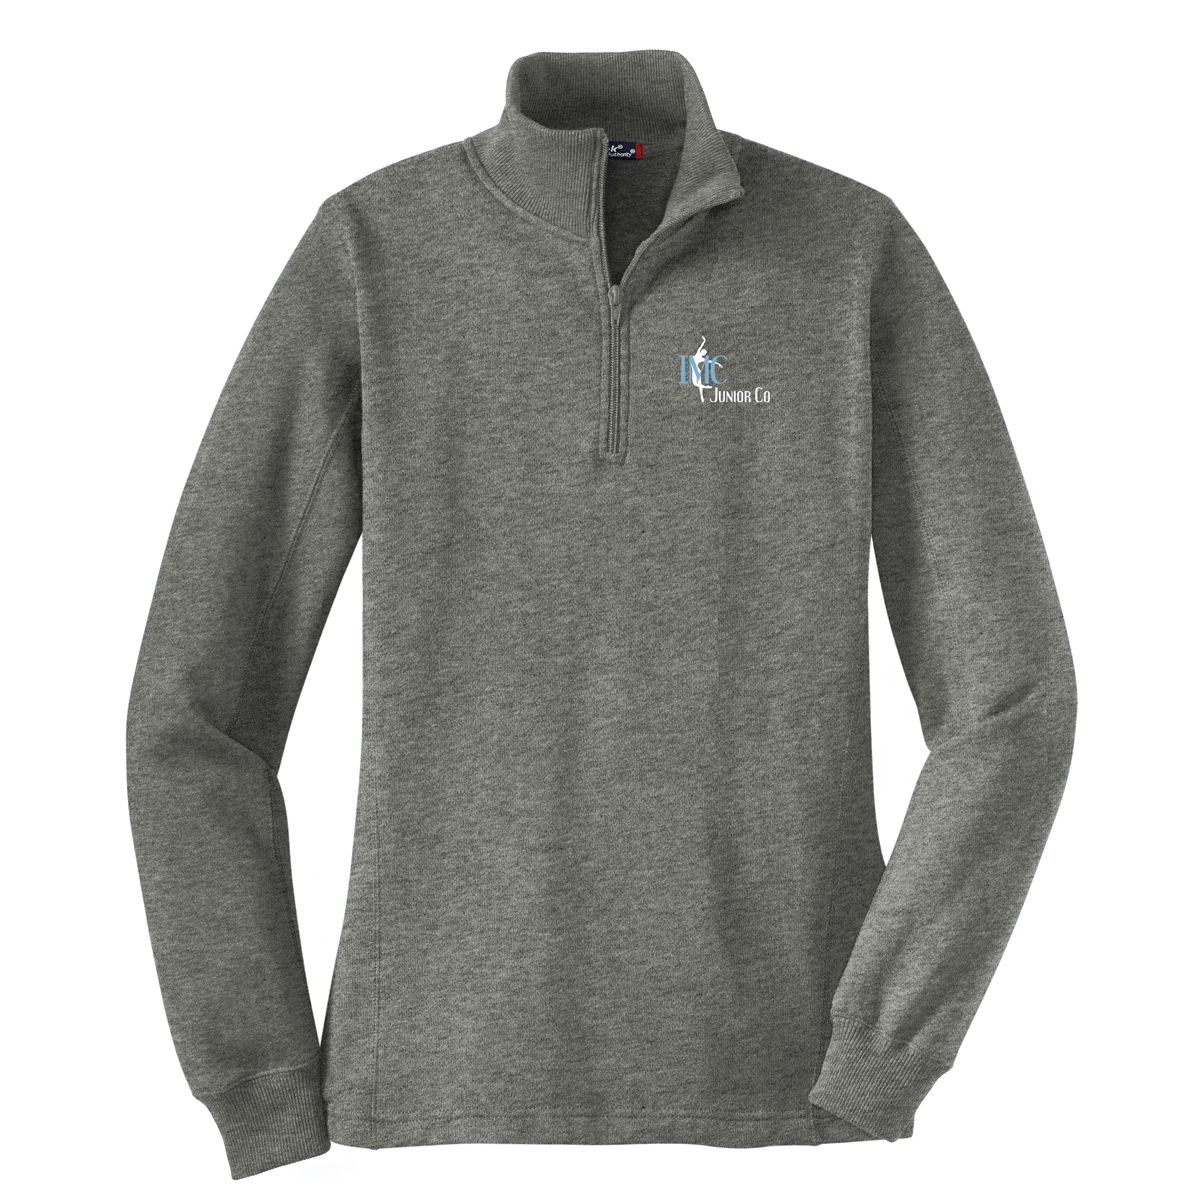 IMC - 1/4 ZIP SWEATSHIRT